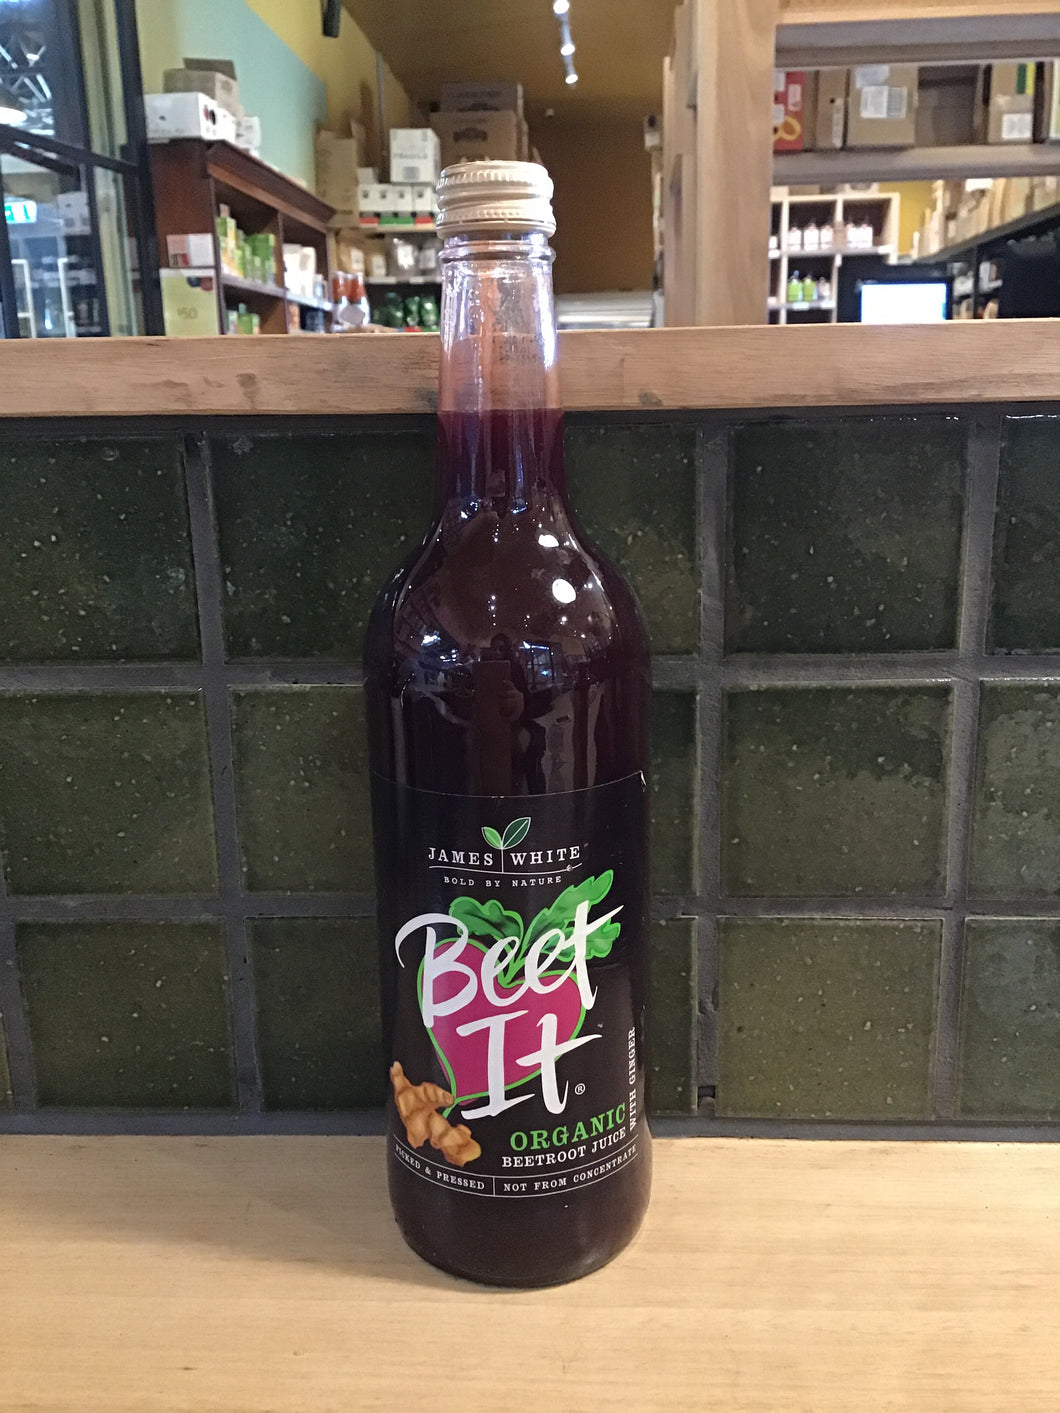 James White Beet It Organic Beetroot with Ginger 75cl (750mL)